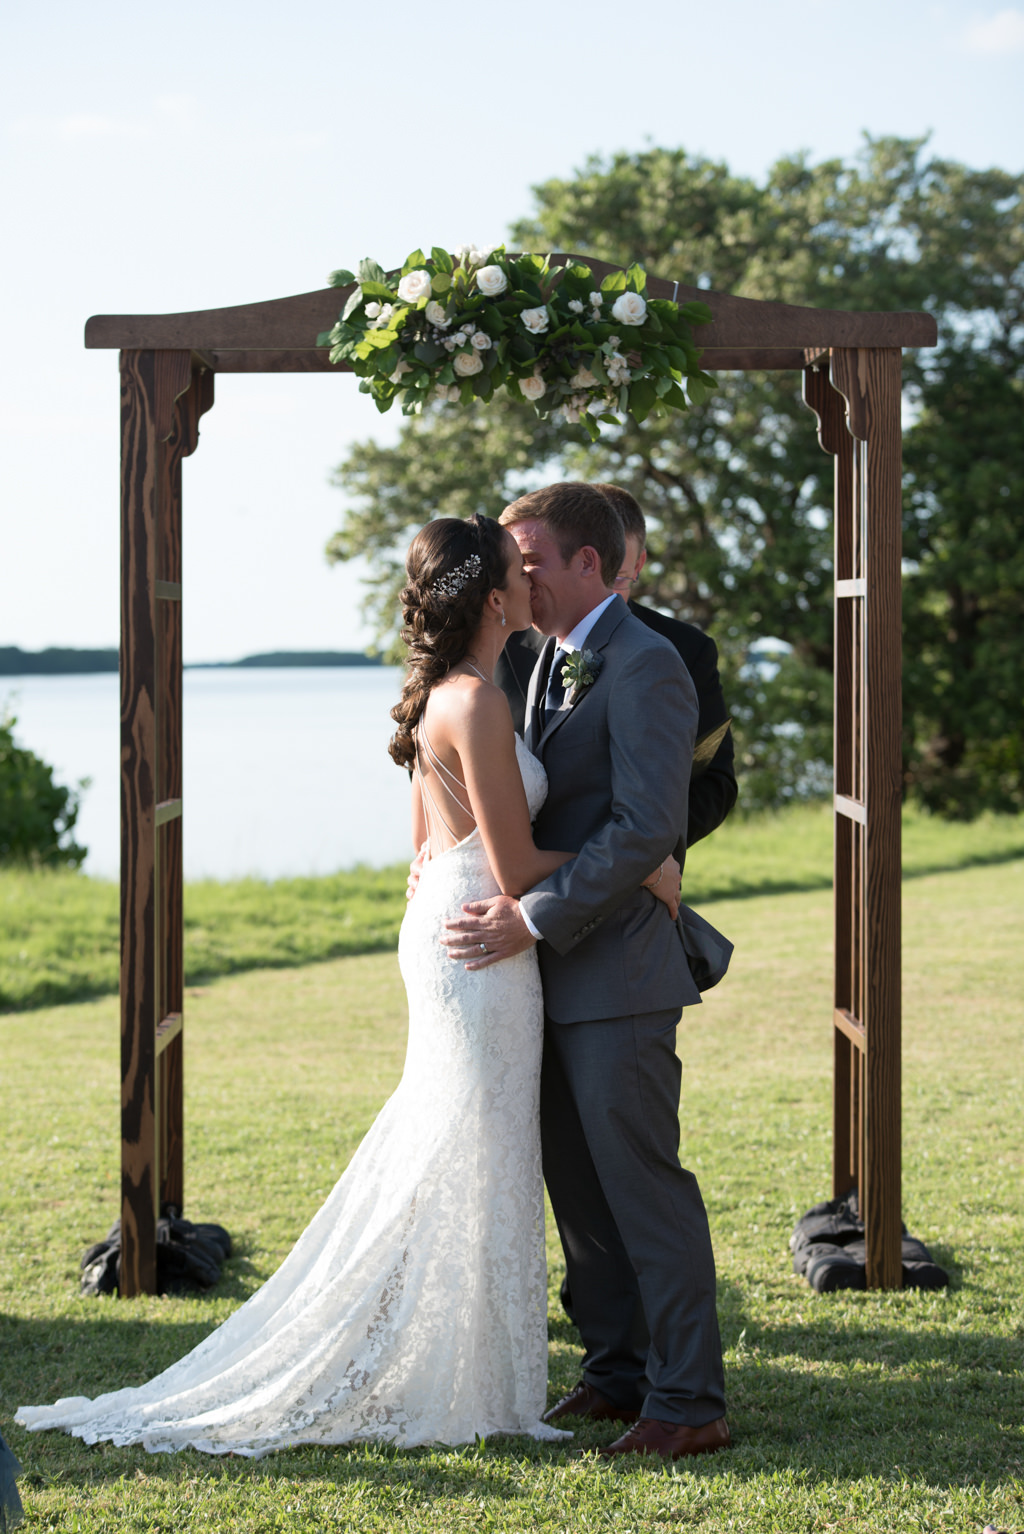 Florida Bride and Groom Outdoor Wedding Ceremony Portrait, Wooden Arch with Greenery and White Floral Bouquet | Tampa Bay Wedding Florist Cotton and Magnolia